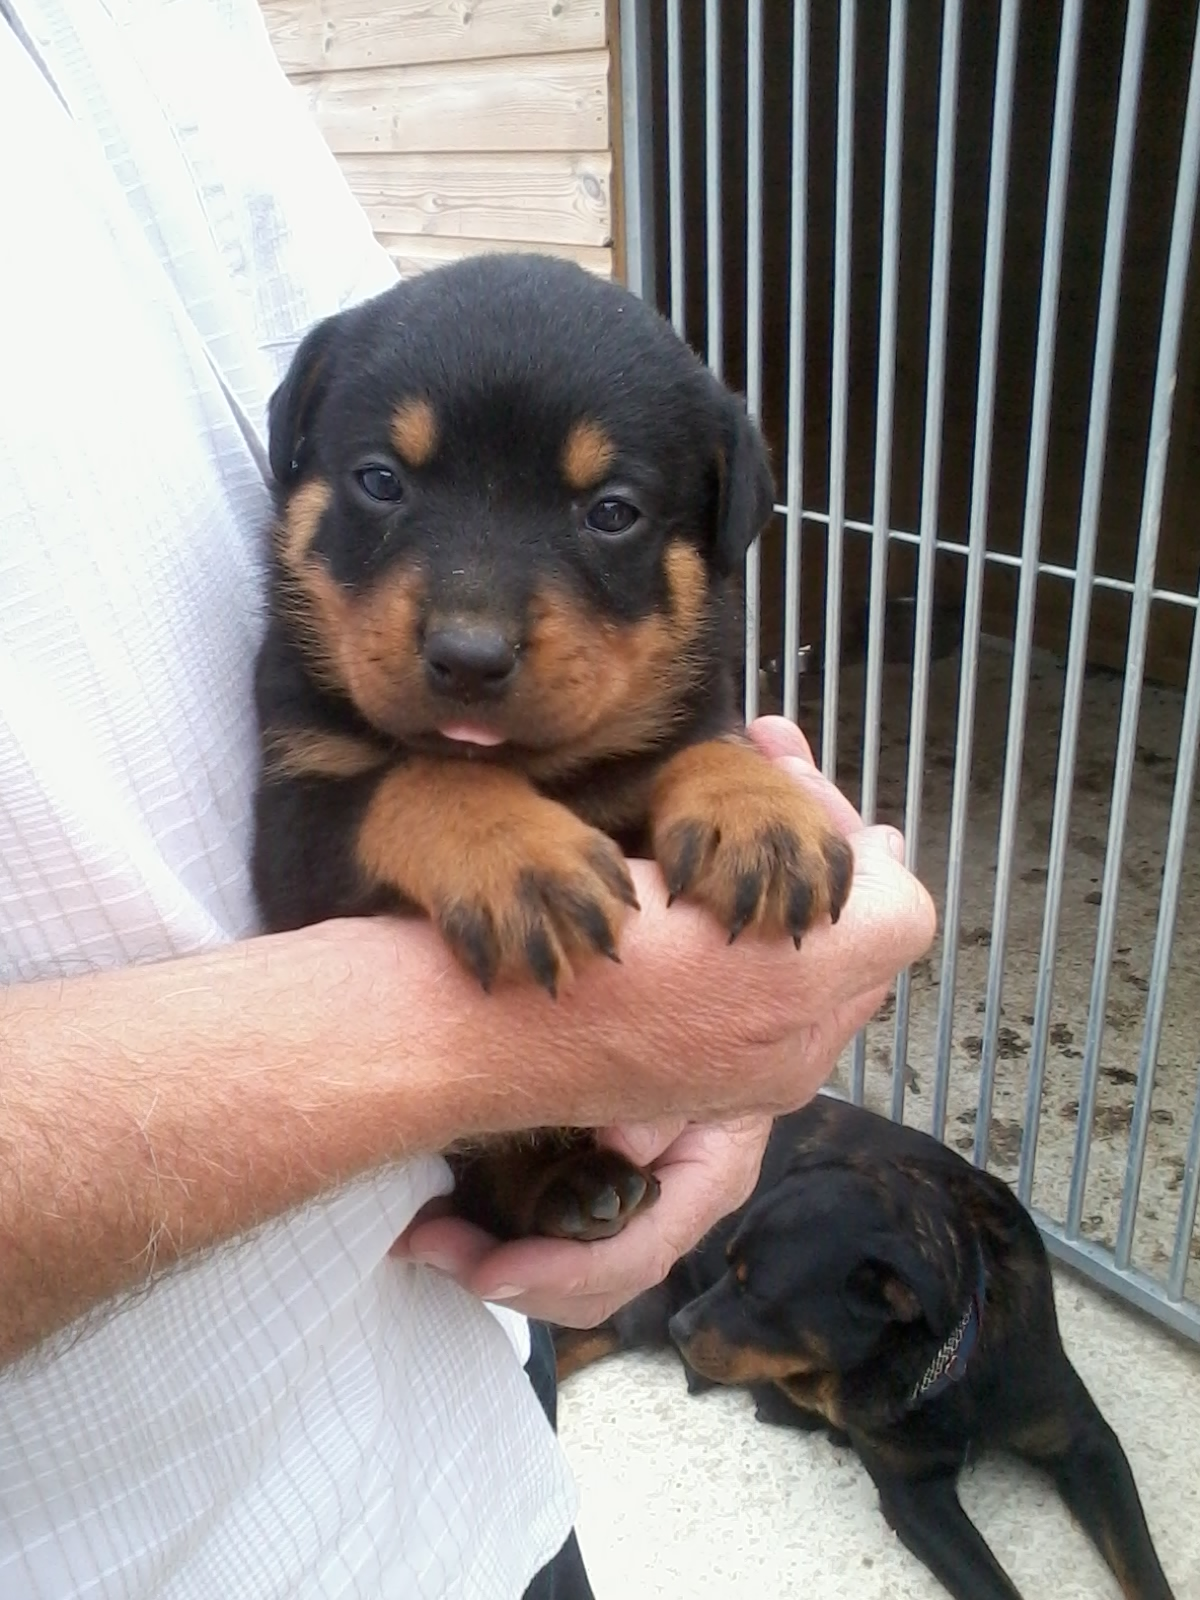 Jake the Rottweiler at 4 weeks old